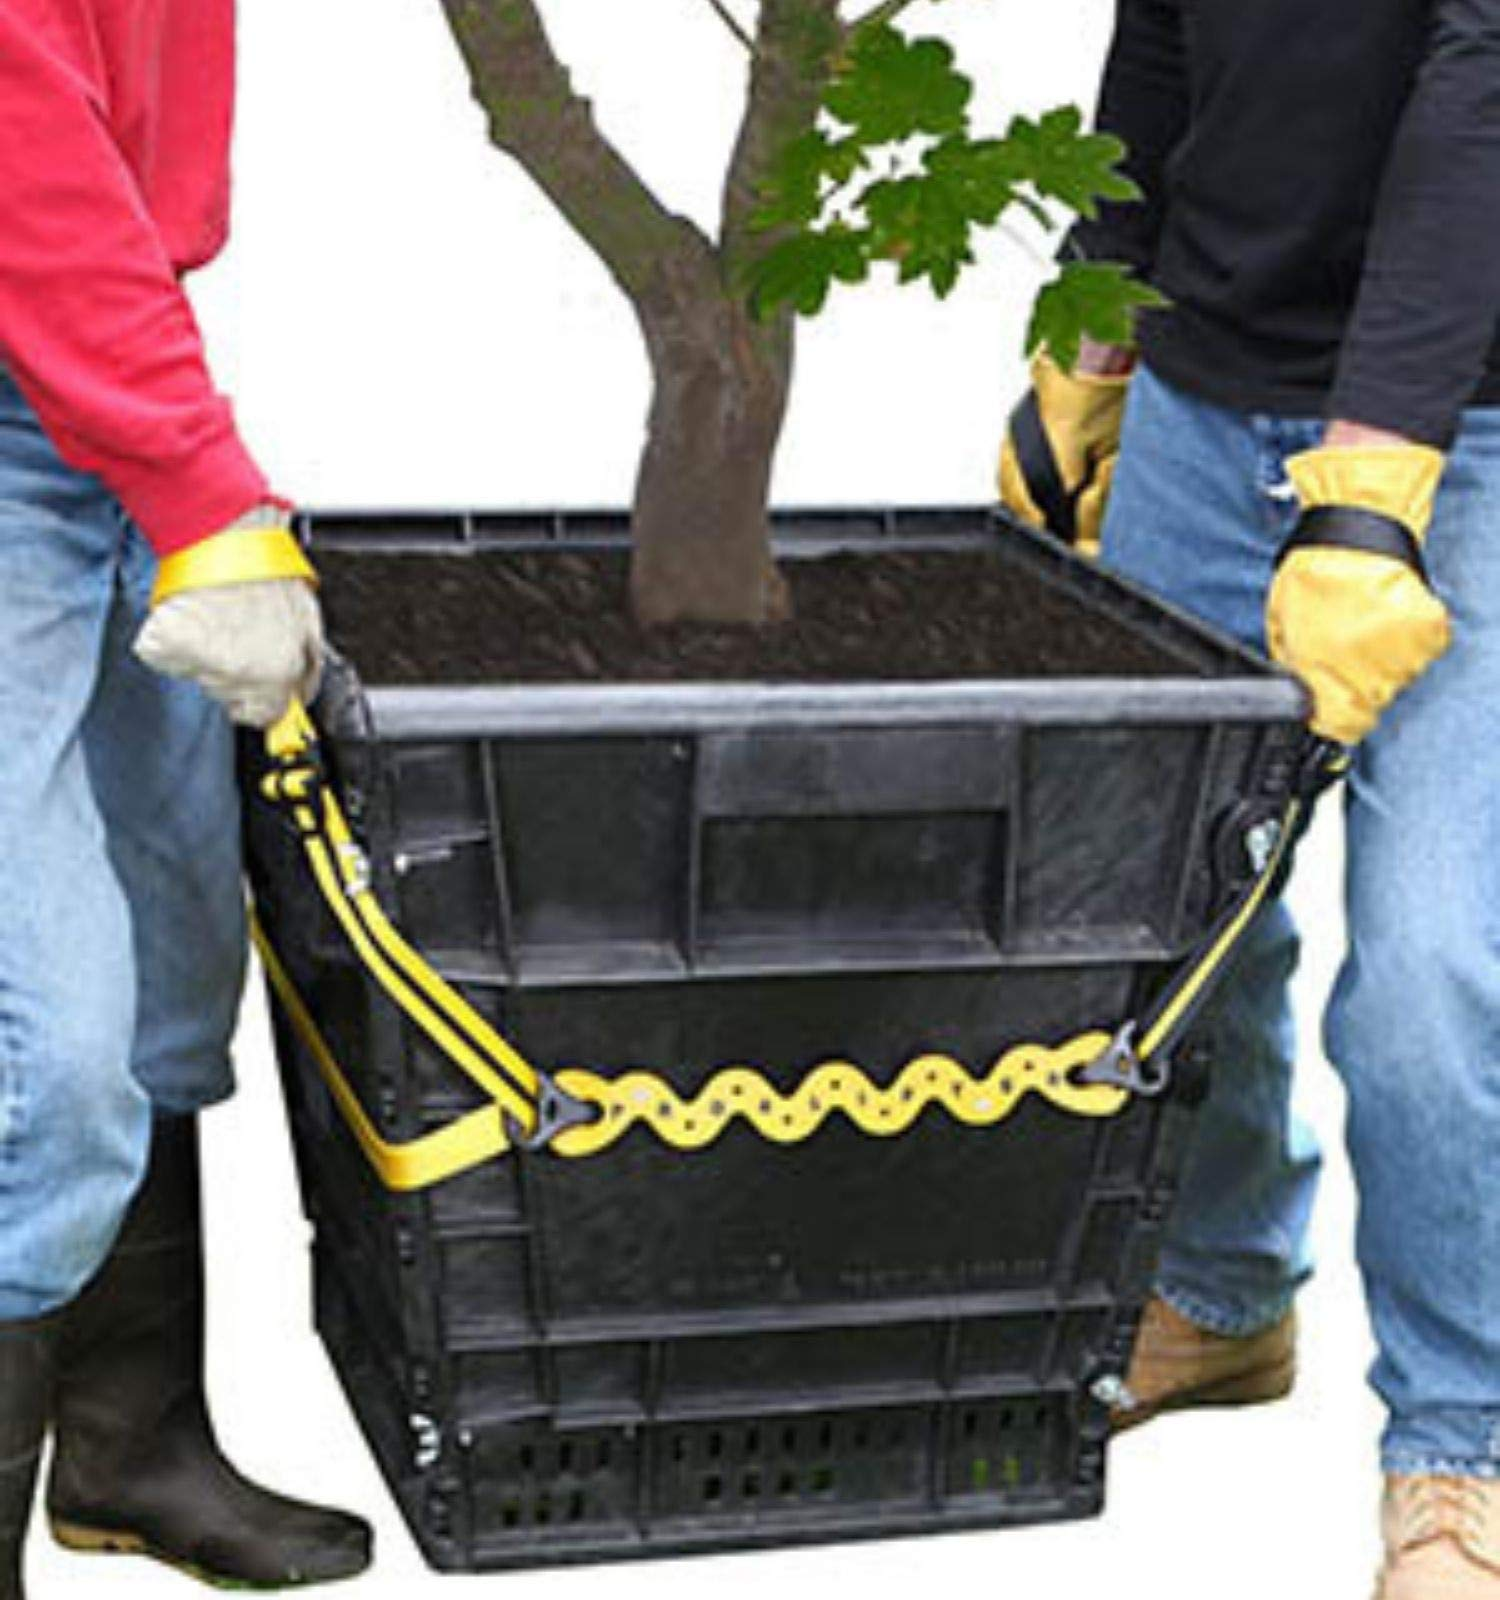 ProLifter - 350 Pound Gardening and Heavy Lifting Tool, Ideal for Professional Landscapers - Perfect for Heavy Potted Plants, Garden Flower Pots, Planters, Trees, Rocks - A Plant Caddy Alternative by PotLifter